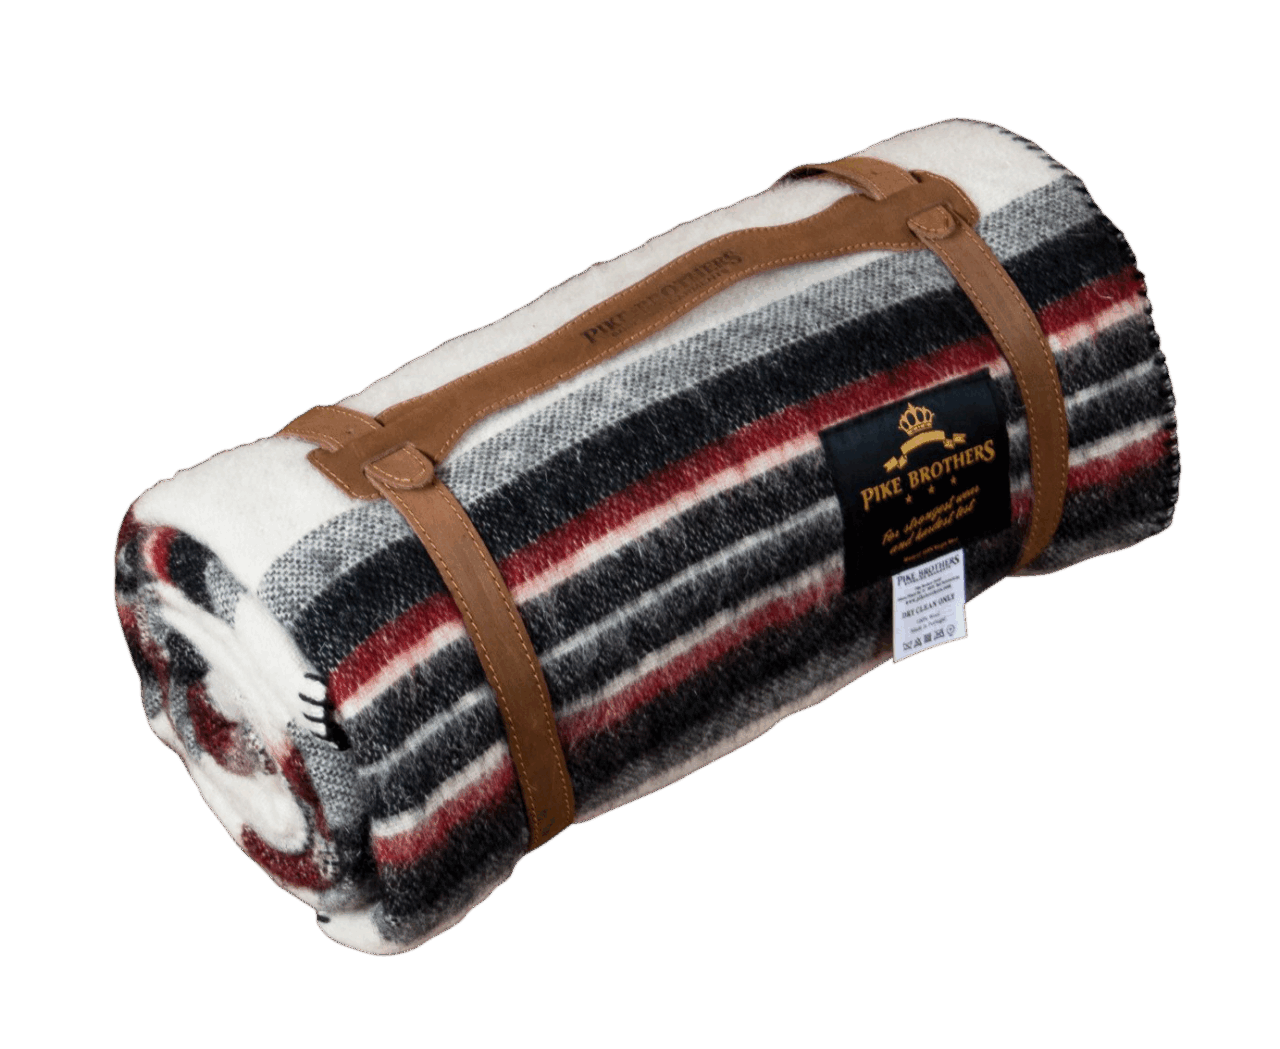 Pike Brothers 1969 Chimayo Blanket - Red